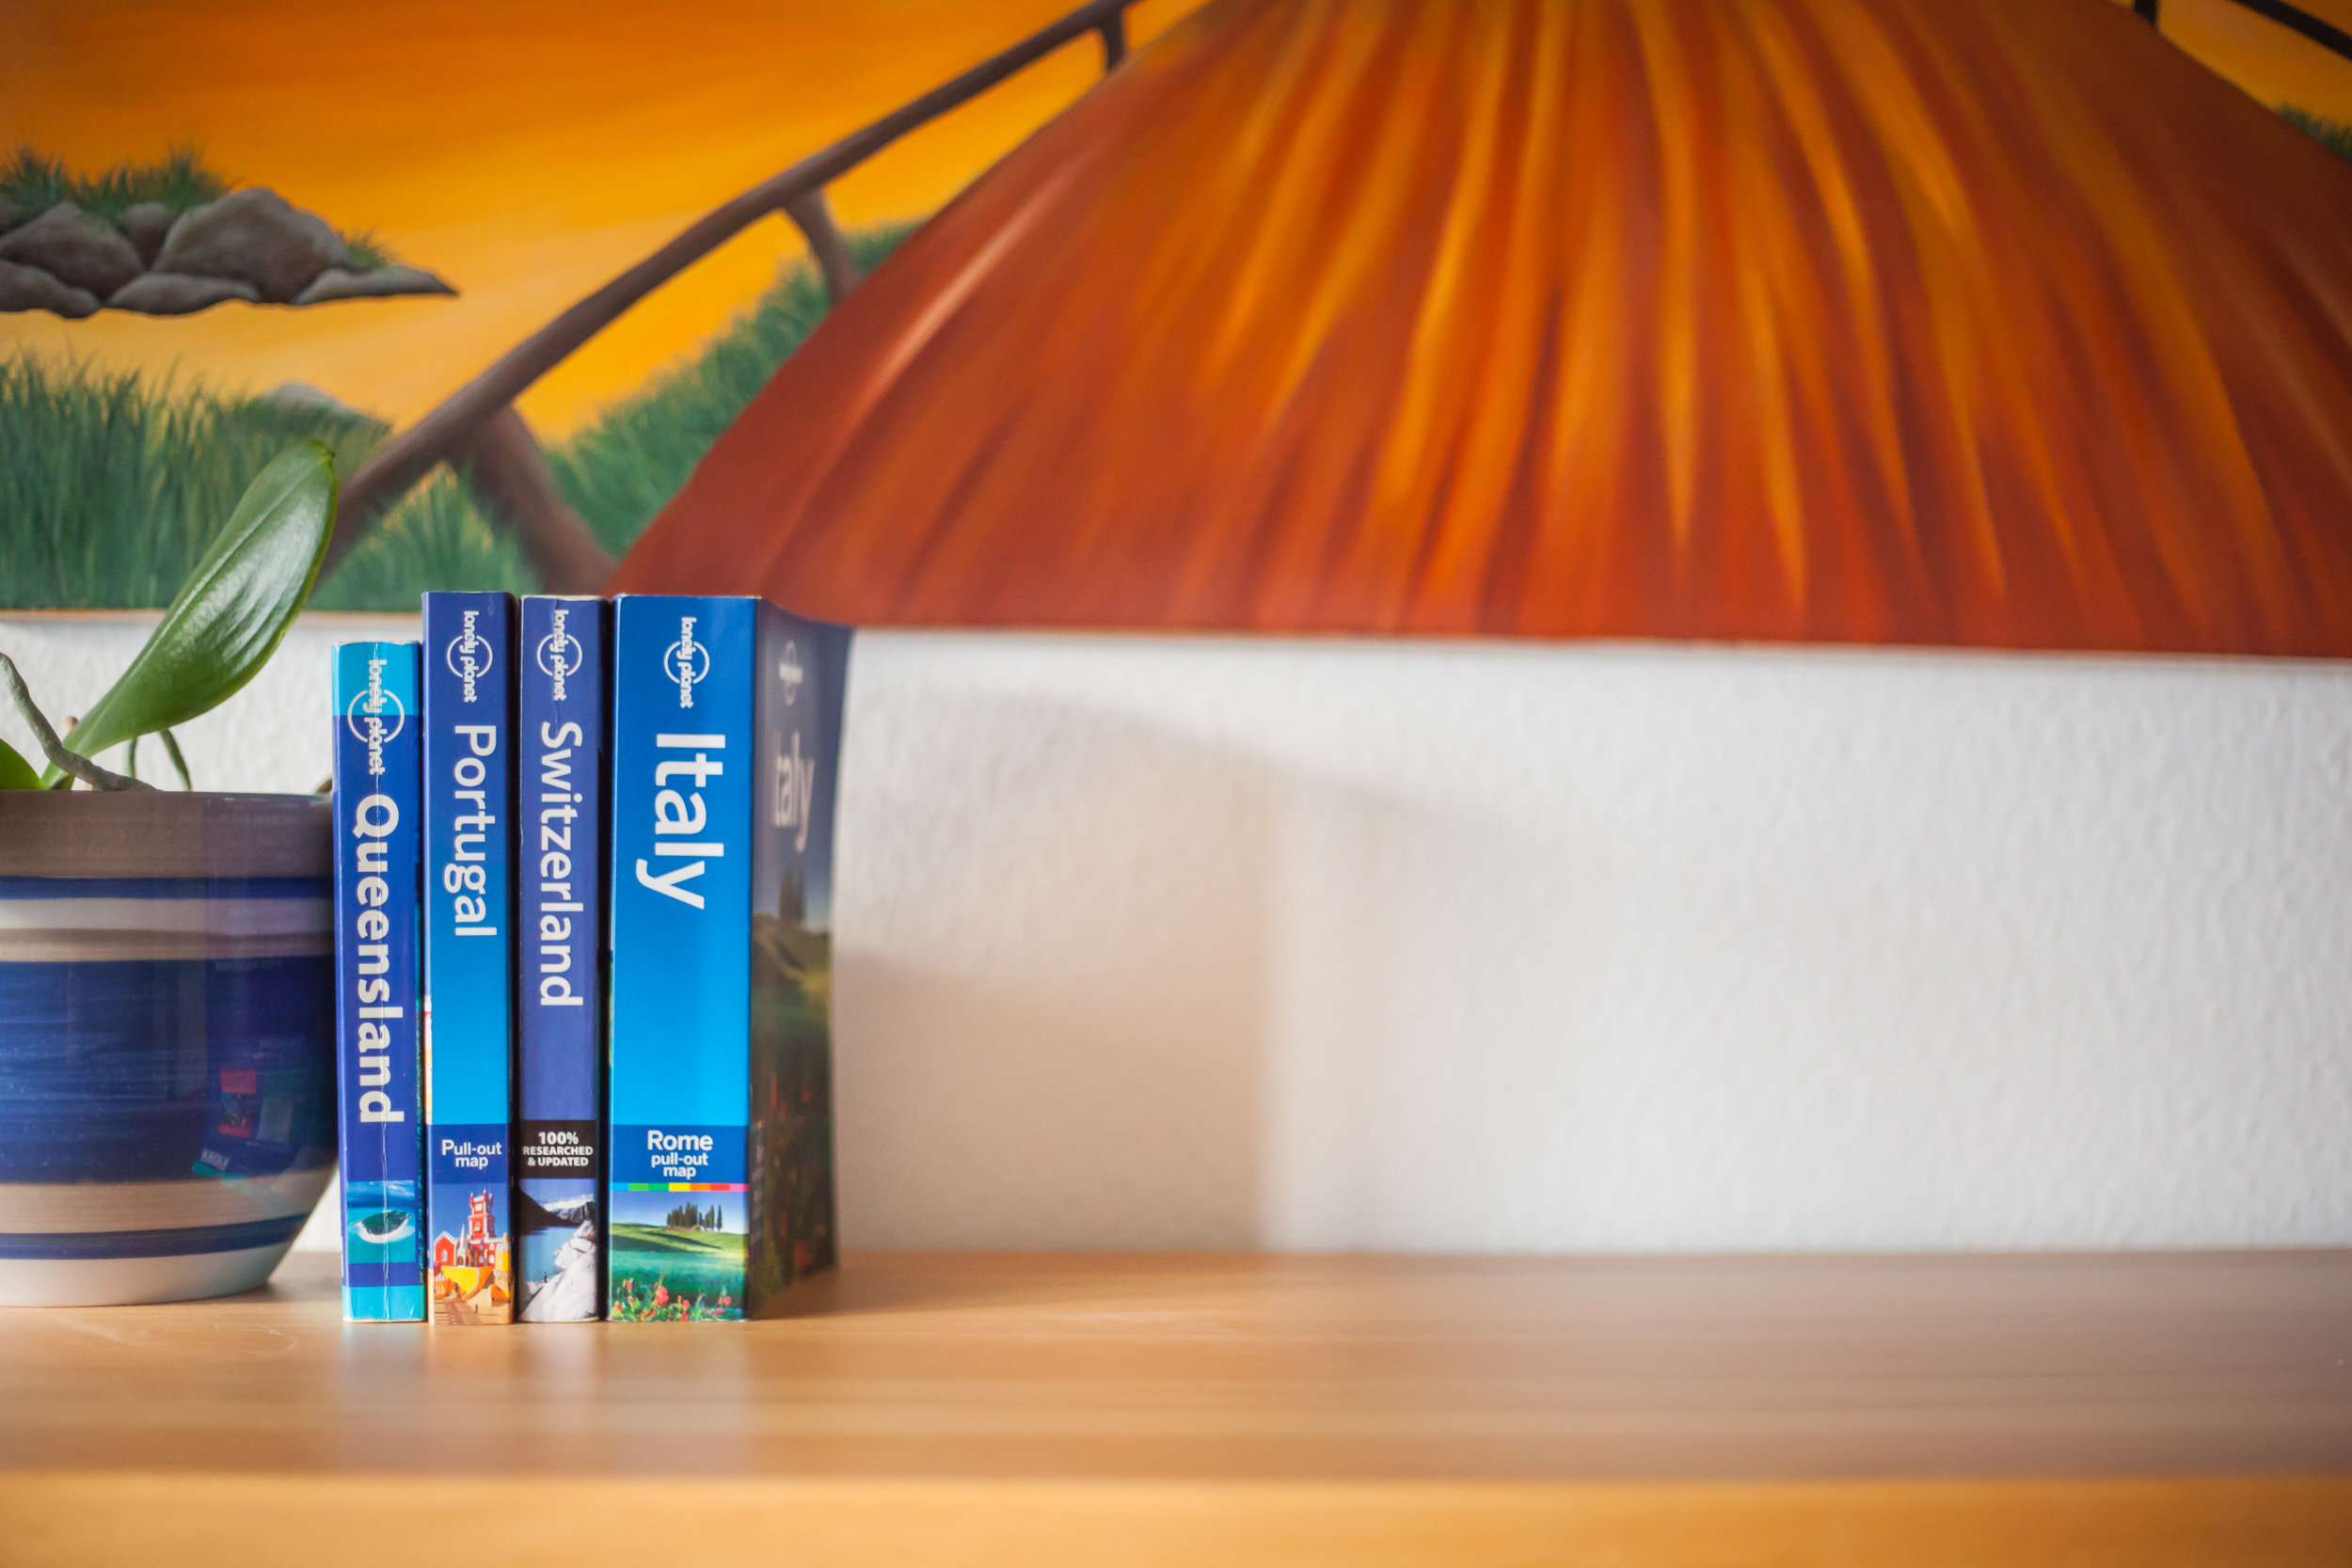 Use travel books and novels about your destination to get a good feel before you go.